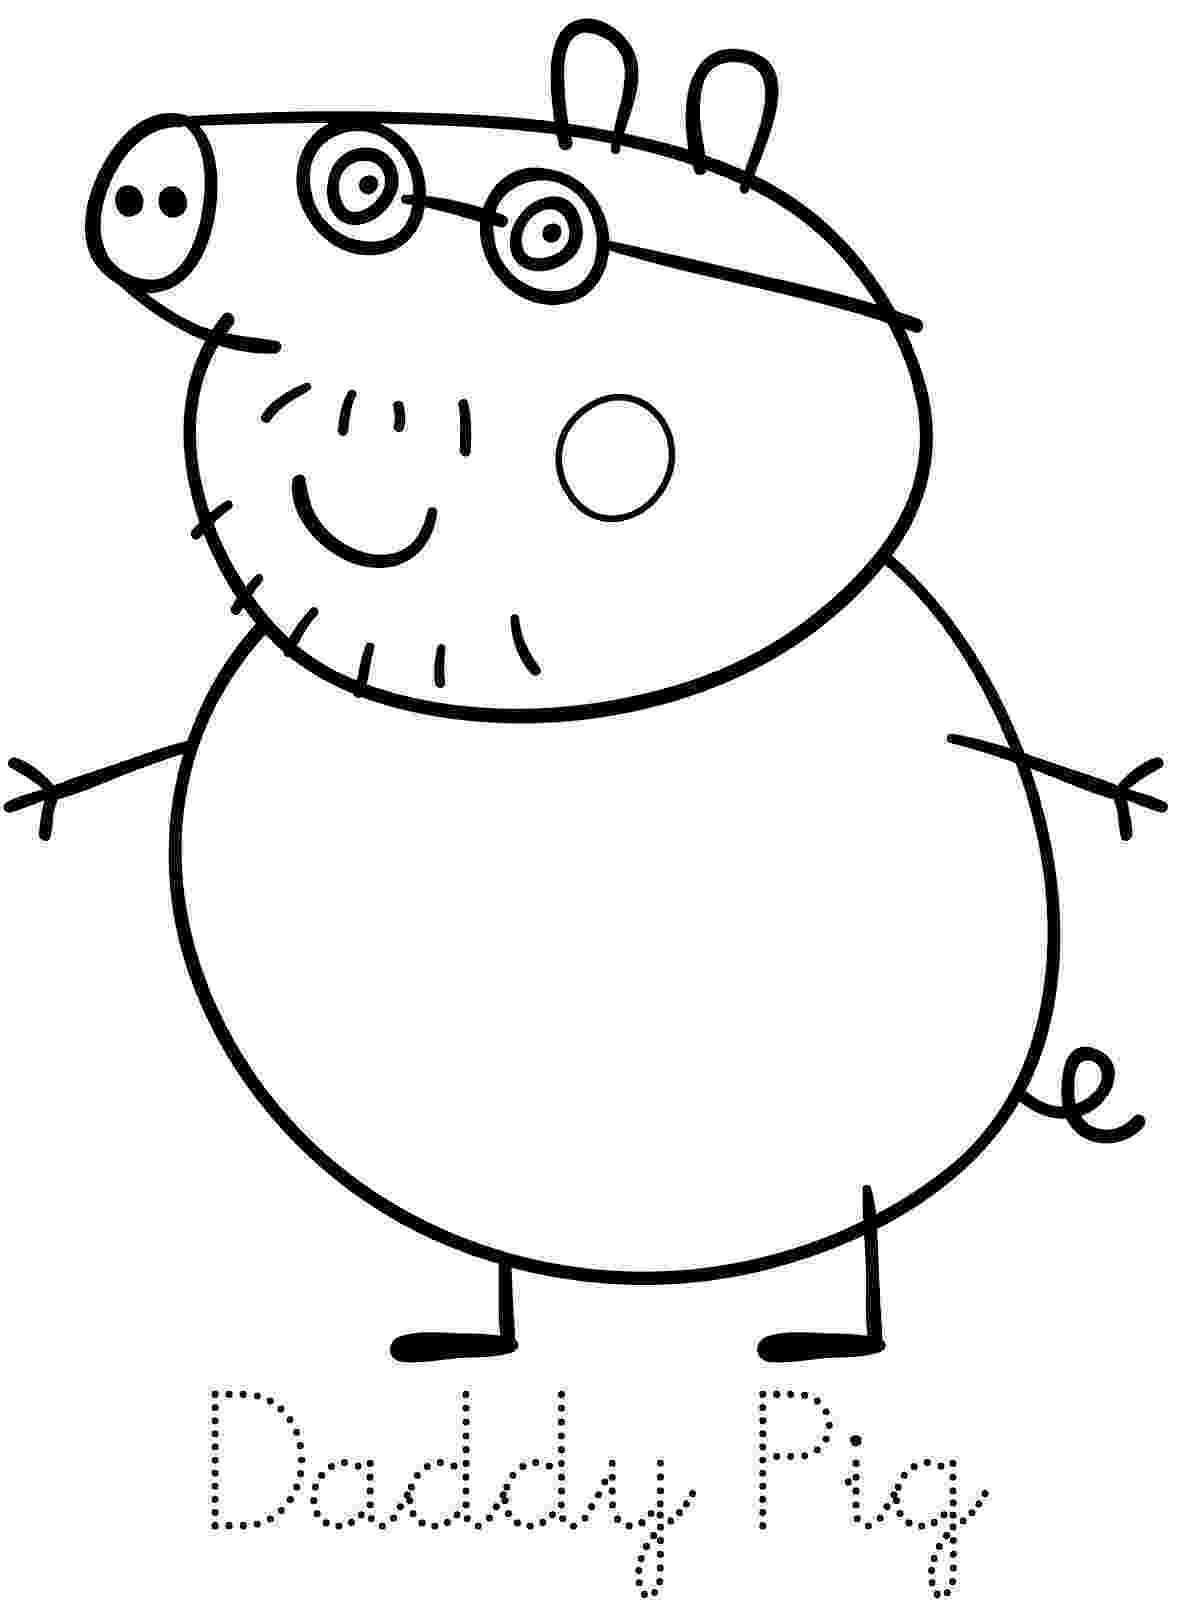 pepa pig coloring pages picture of peppa pig coloring page coloring sky coloring pepa pages pig